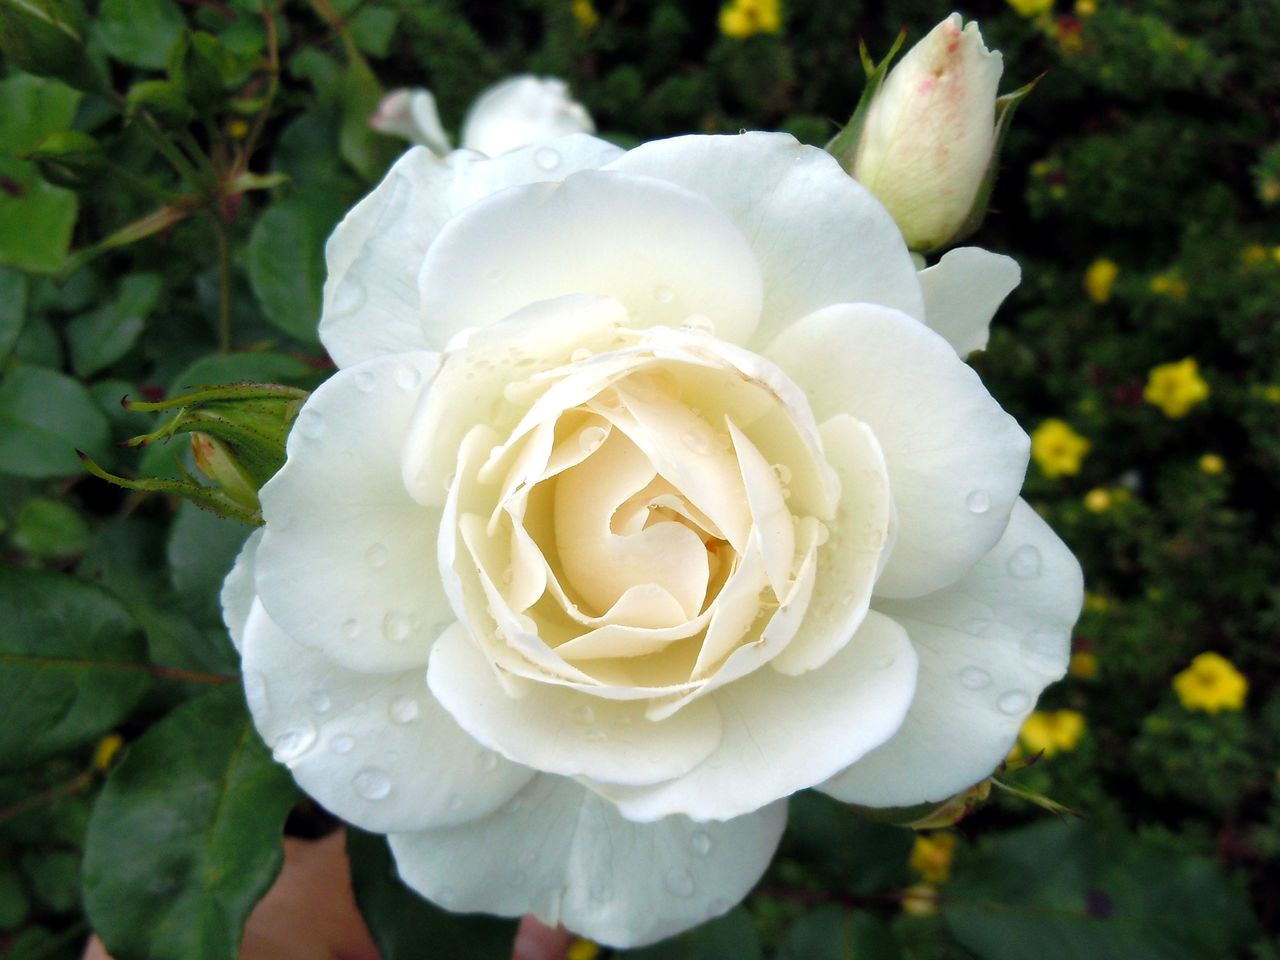 flower, petal, beauty in nature, nature, flower head, rose - flower, white color, plant, growth, fragility, freshness, close-up, day, blooming, focus on foreground, outdoors, no people, wild rose, leaf, water